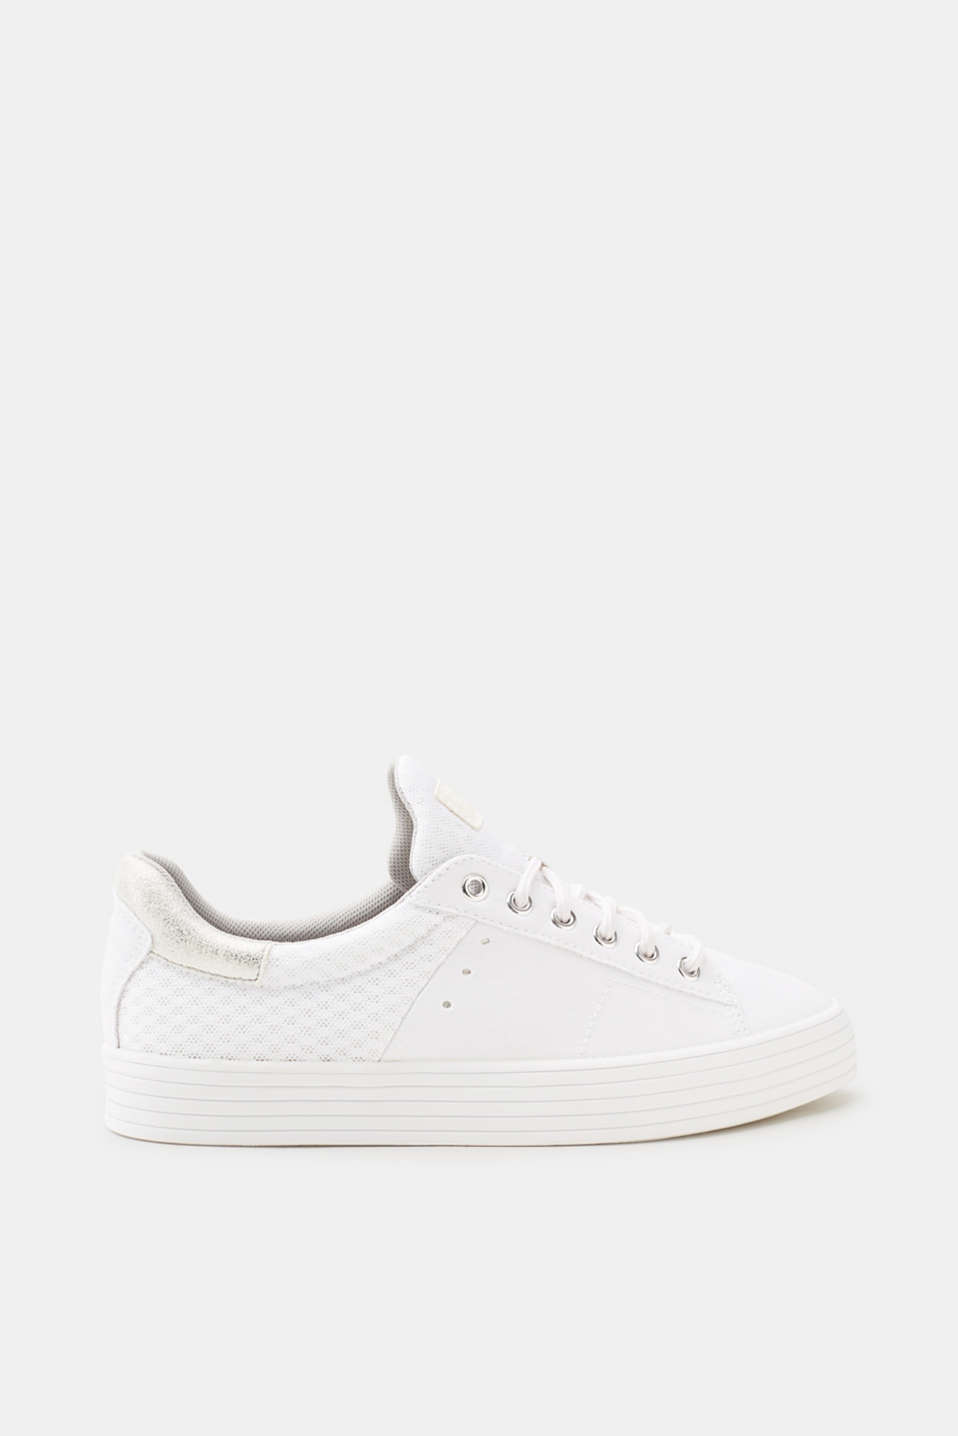 Esprit - Sneakers da allacciare in materiale misto di tendenza